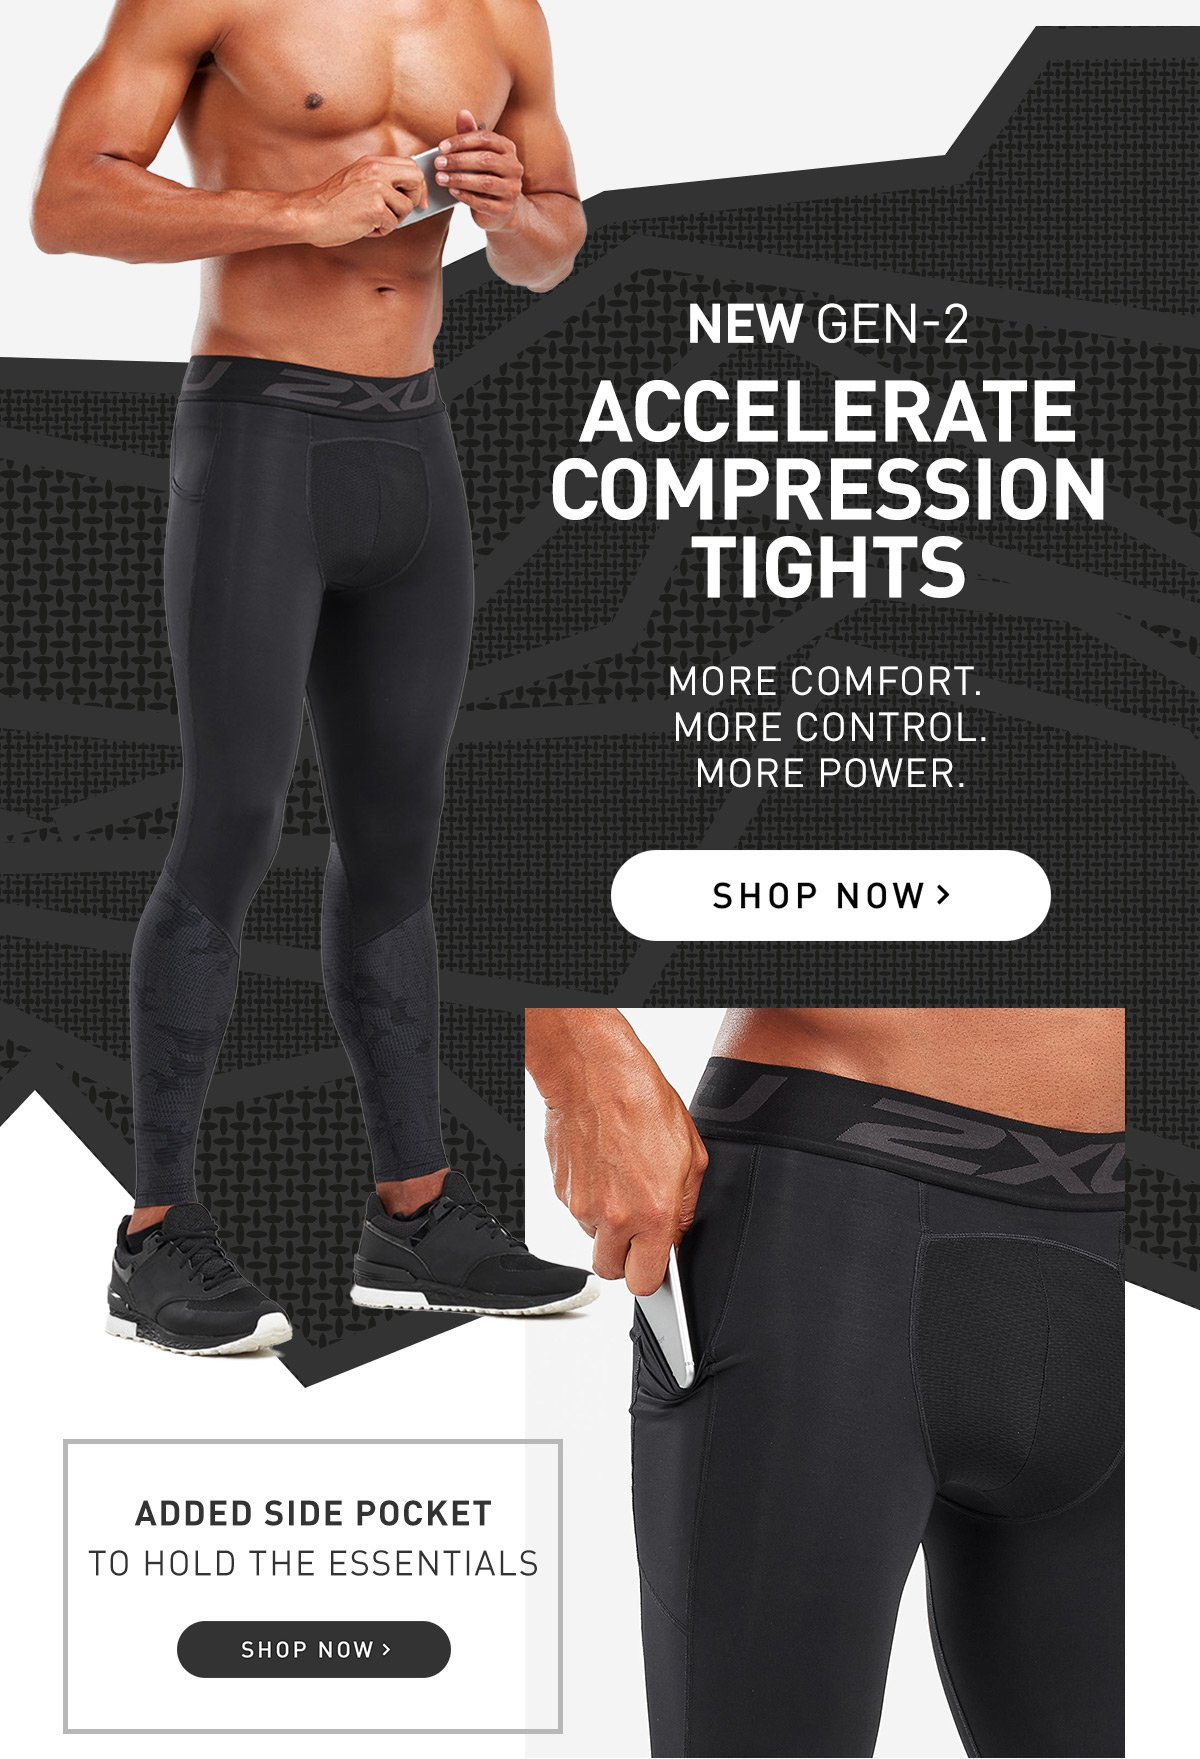 Shop the new Gen-2 Accelerate Compression Tights